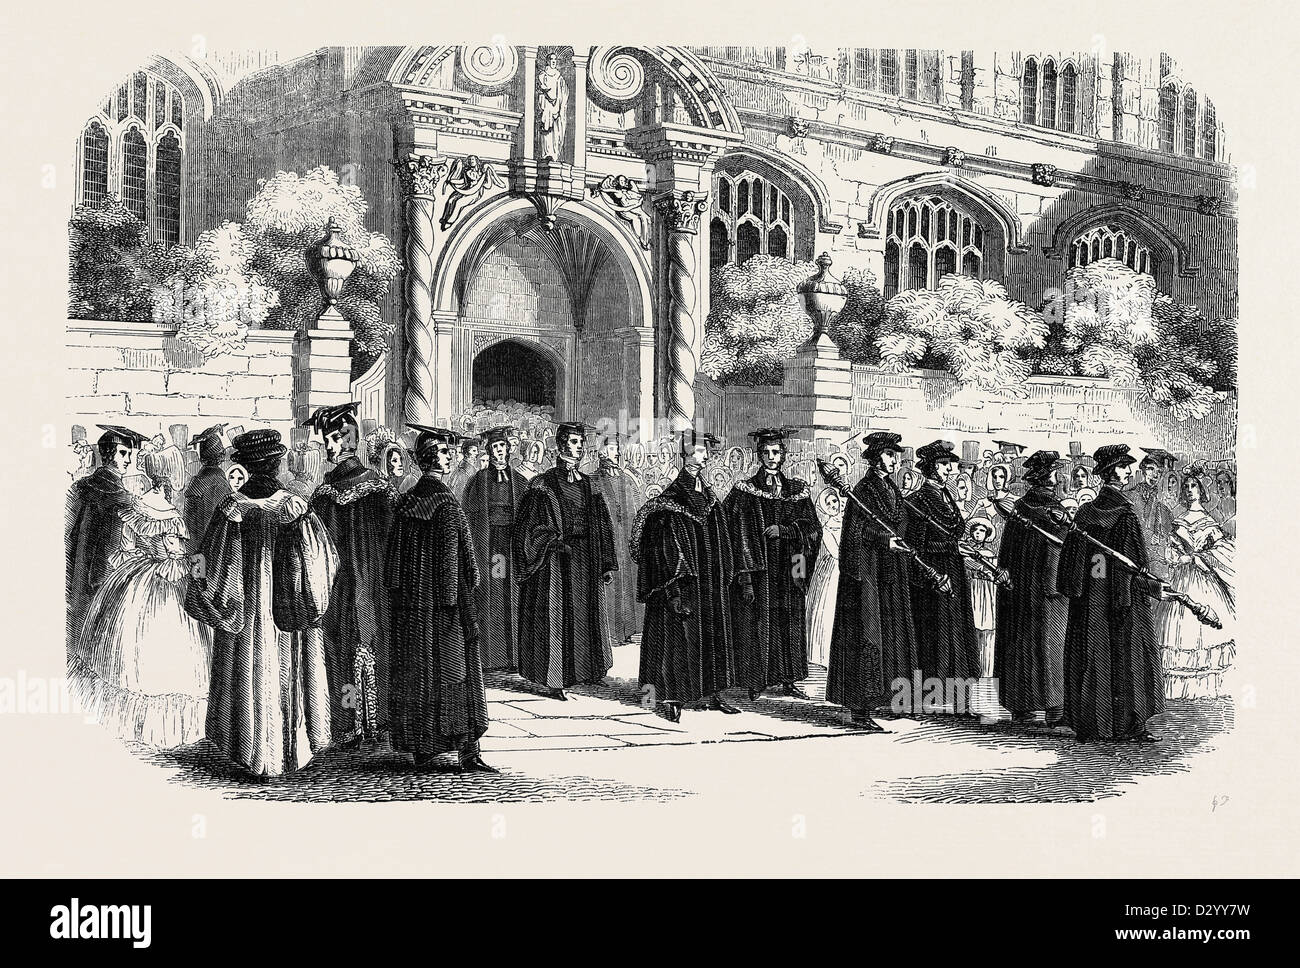 THE PROCESSION FROM ST. MARY'S. - Stock Image